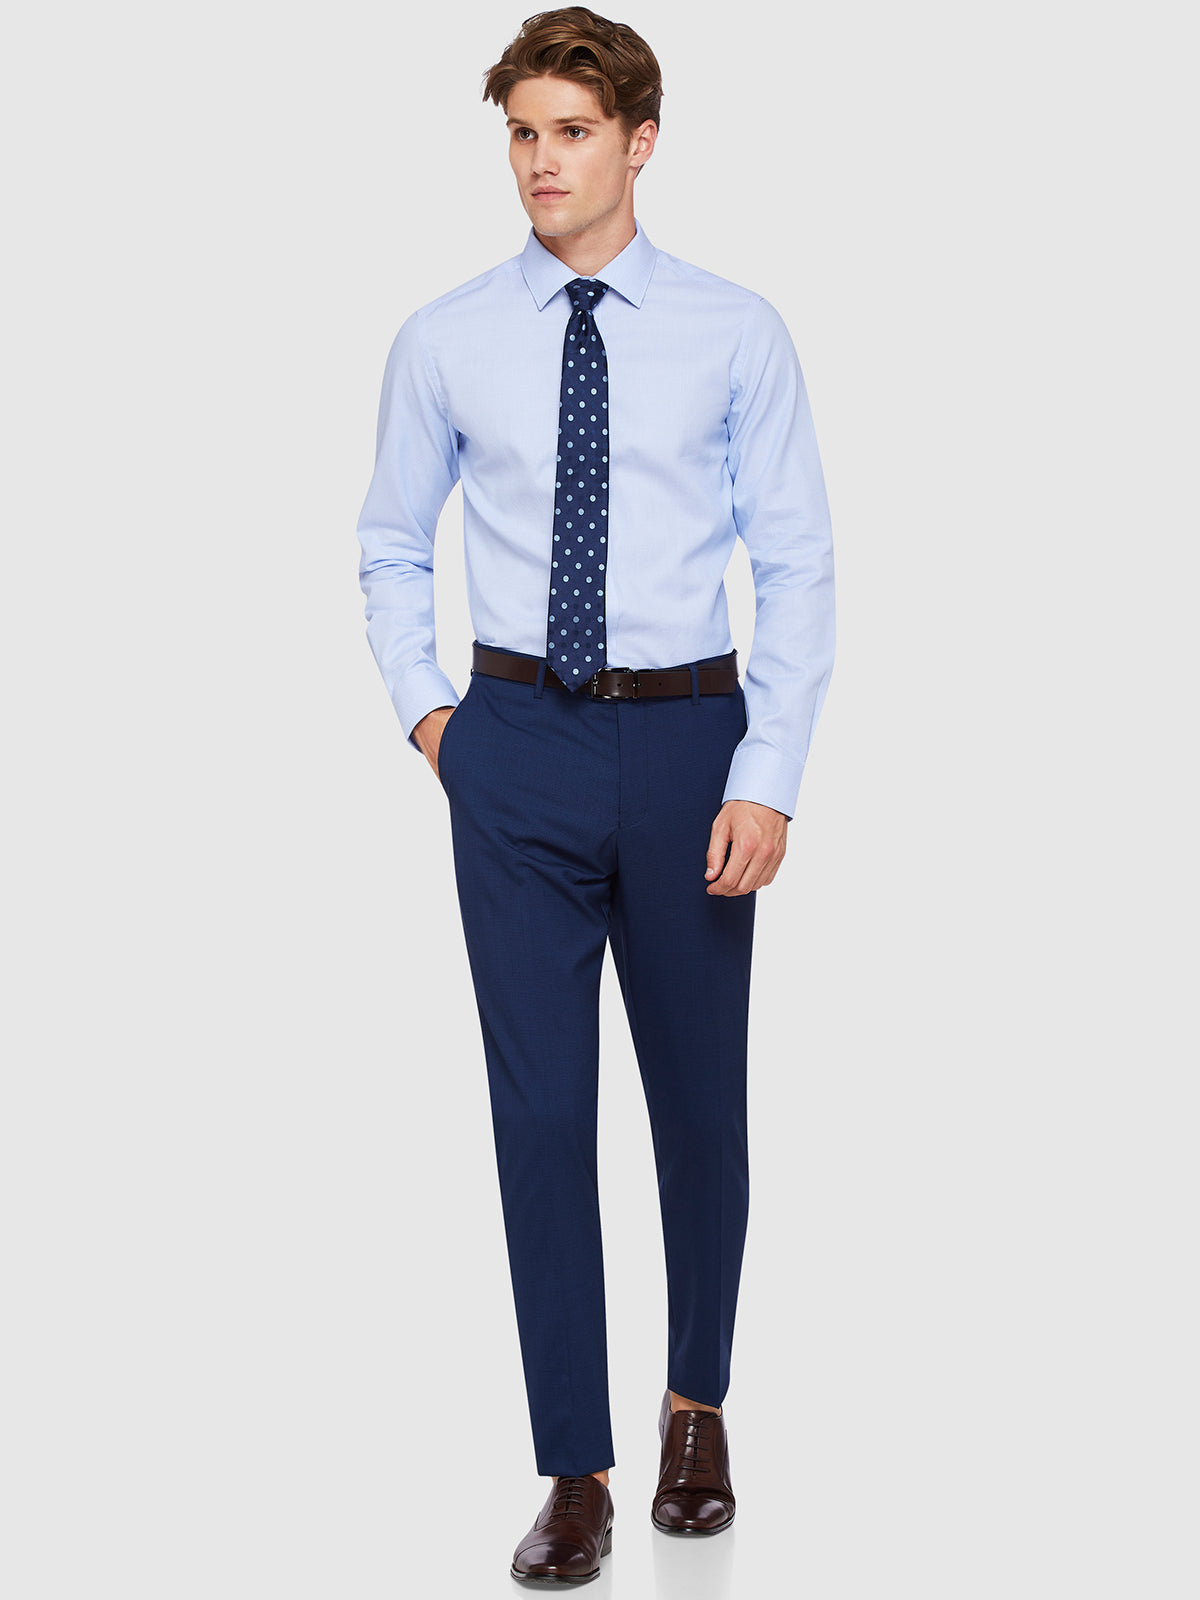 MARLOWE WOOL SUIT TROUSERS NAVY